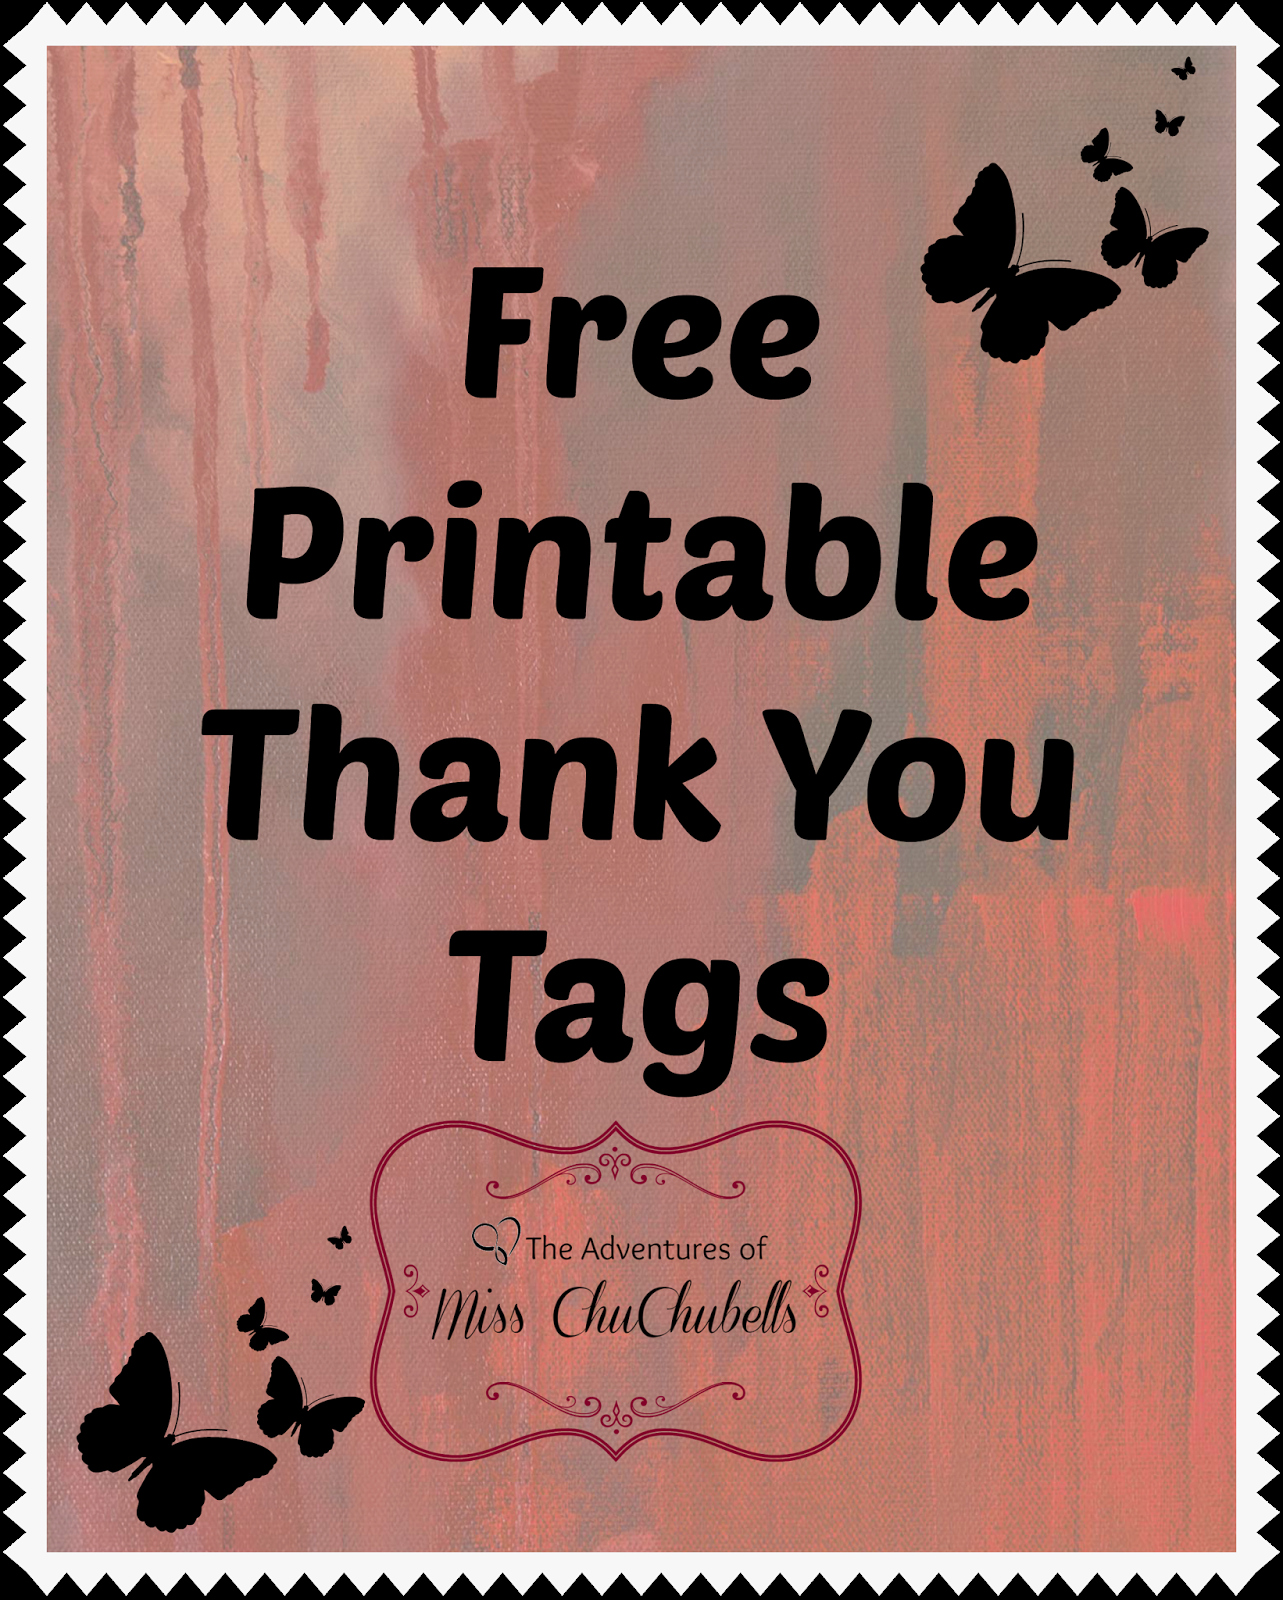 Free Printable Thank You Tags Unique the Adventures Of Miss Chuchubells Diy Projects Free